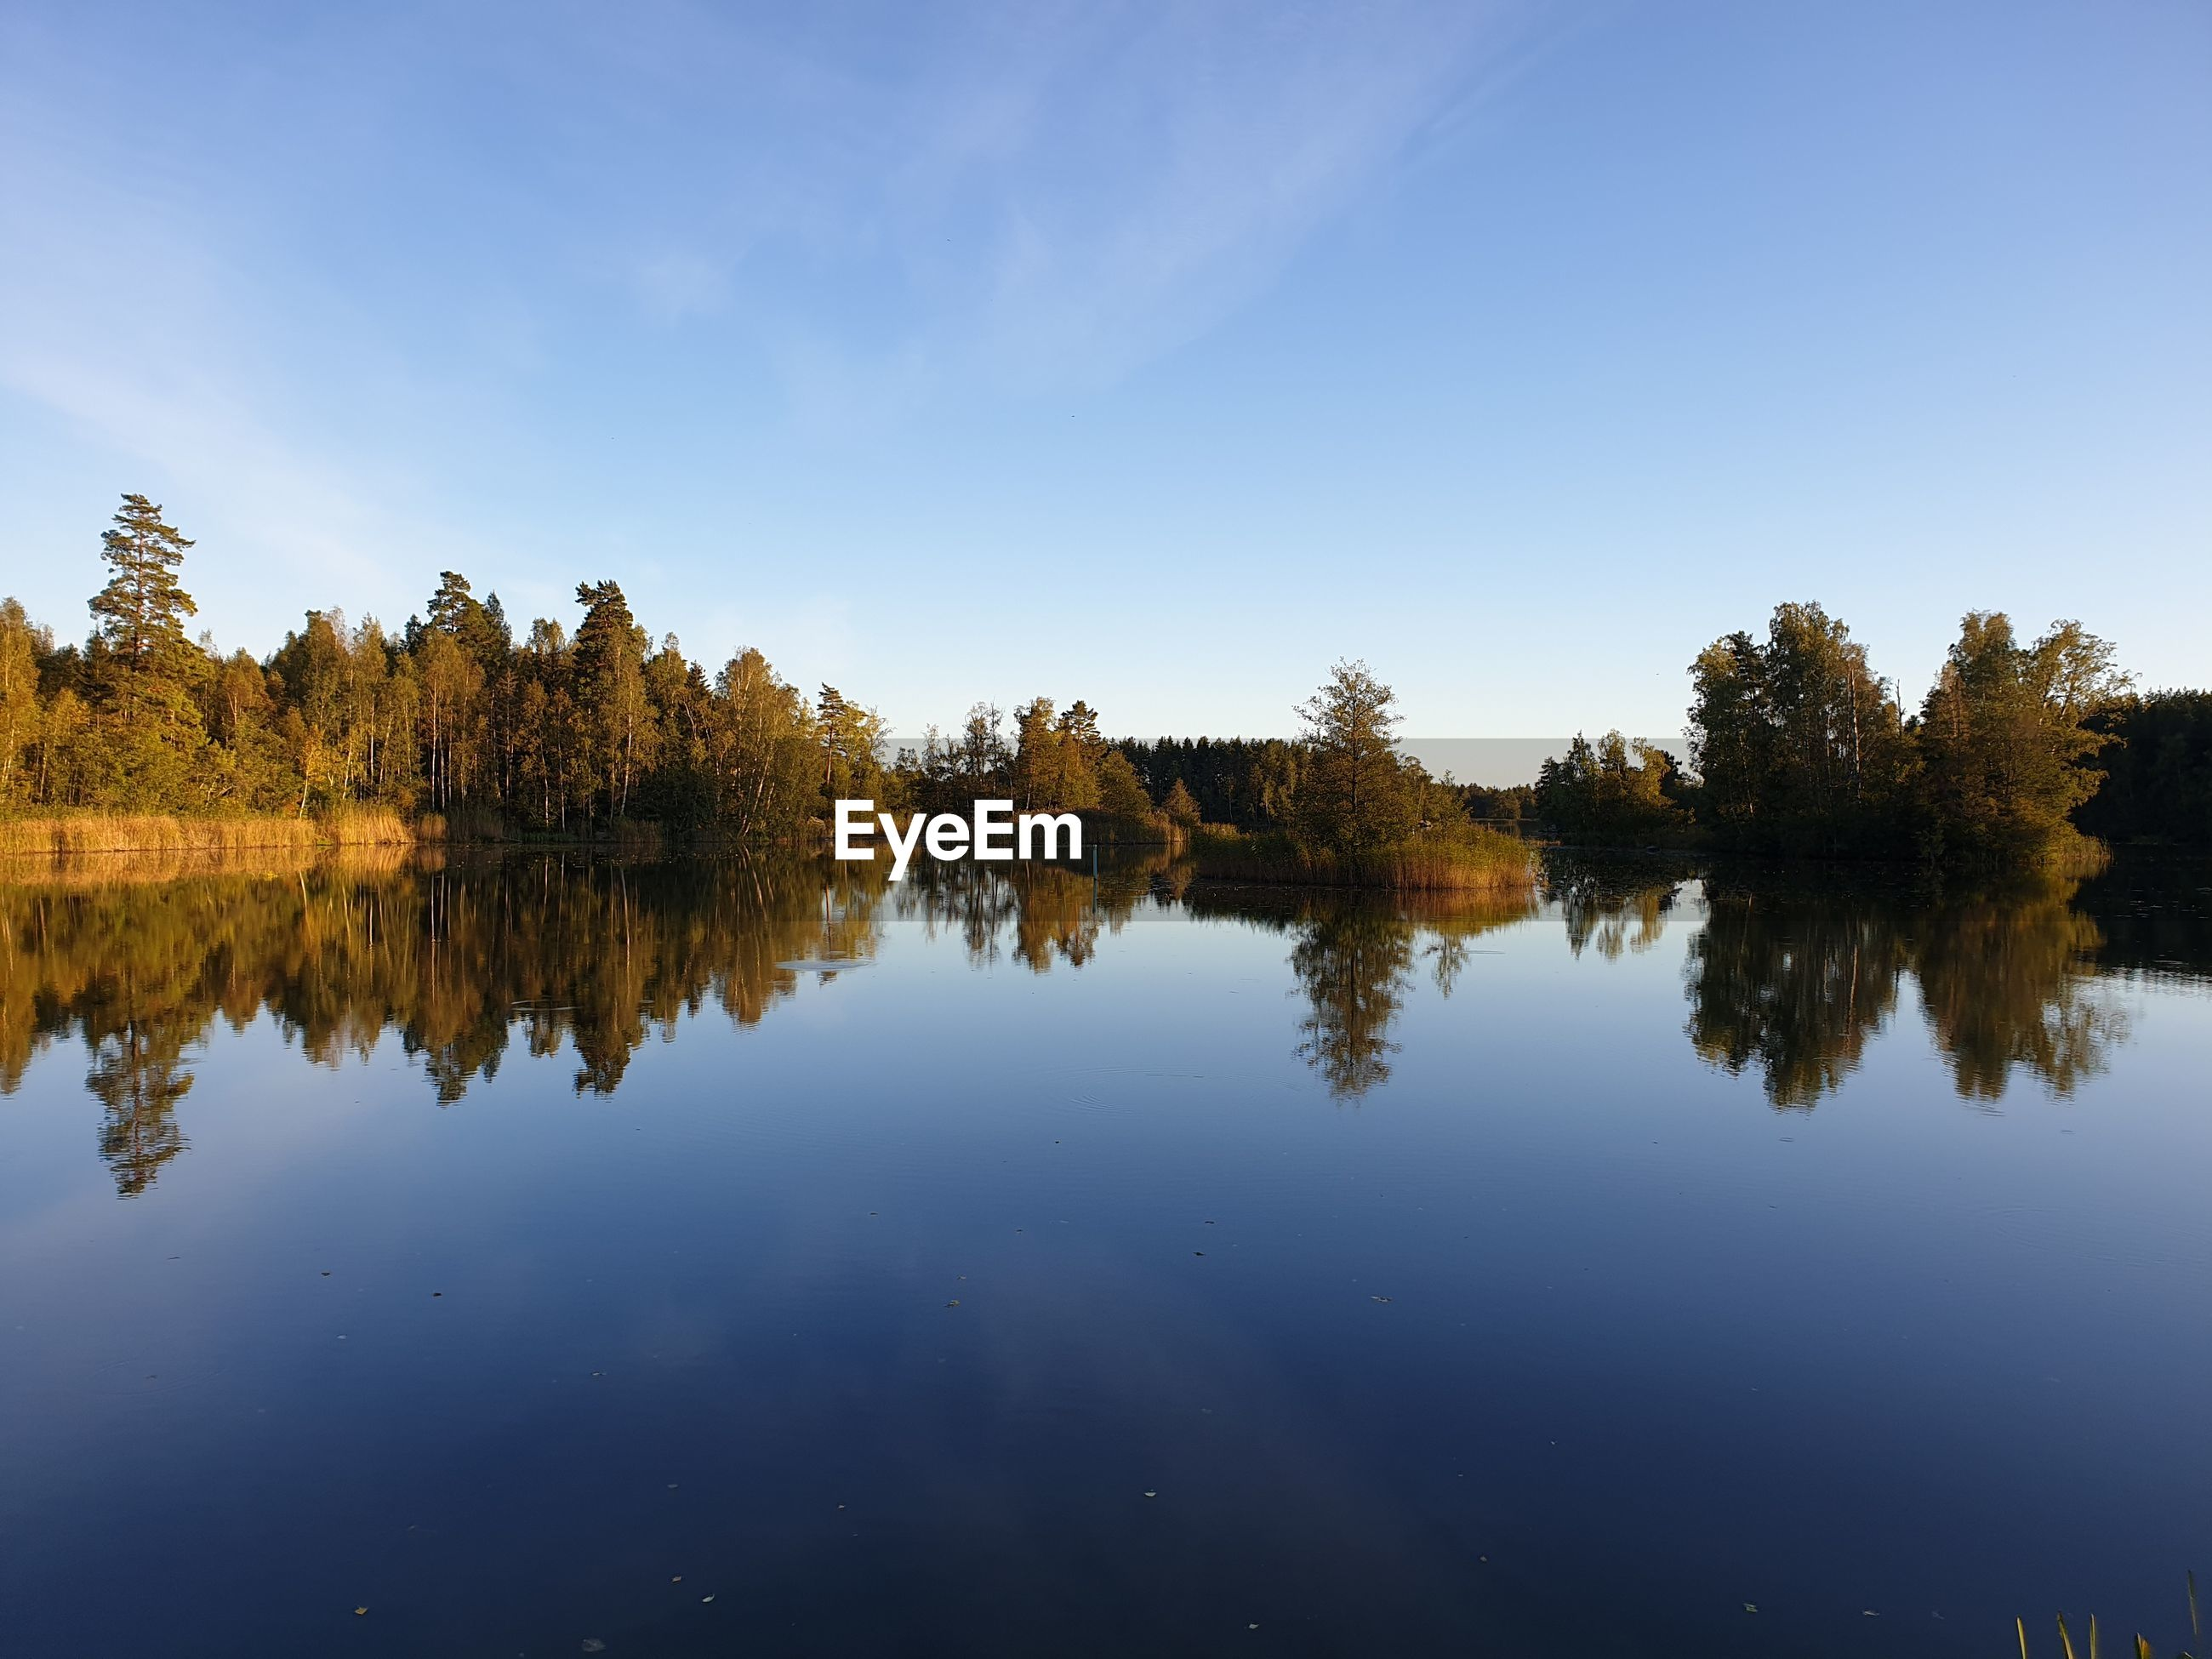 Reflection of trees in lake against blue sky